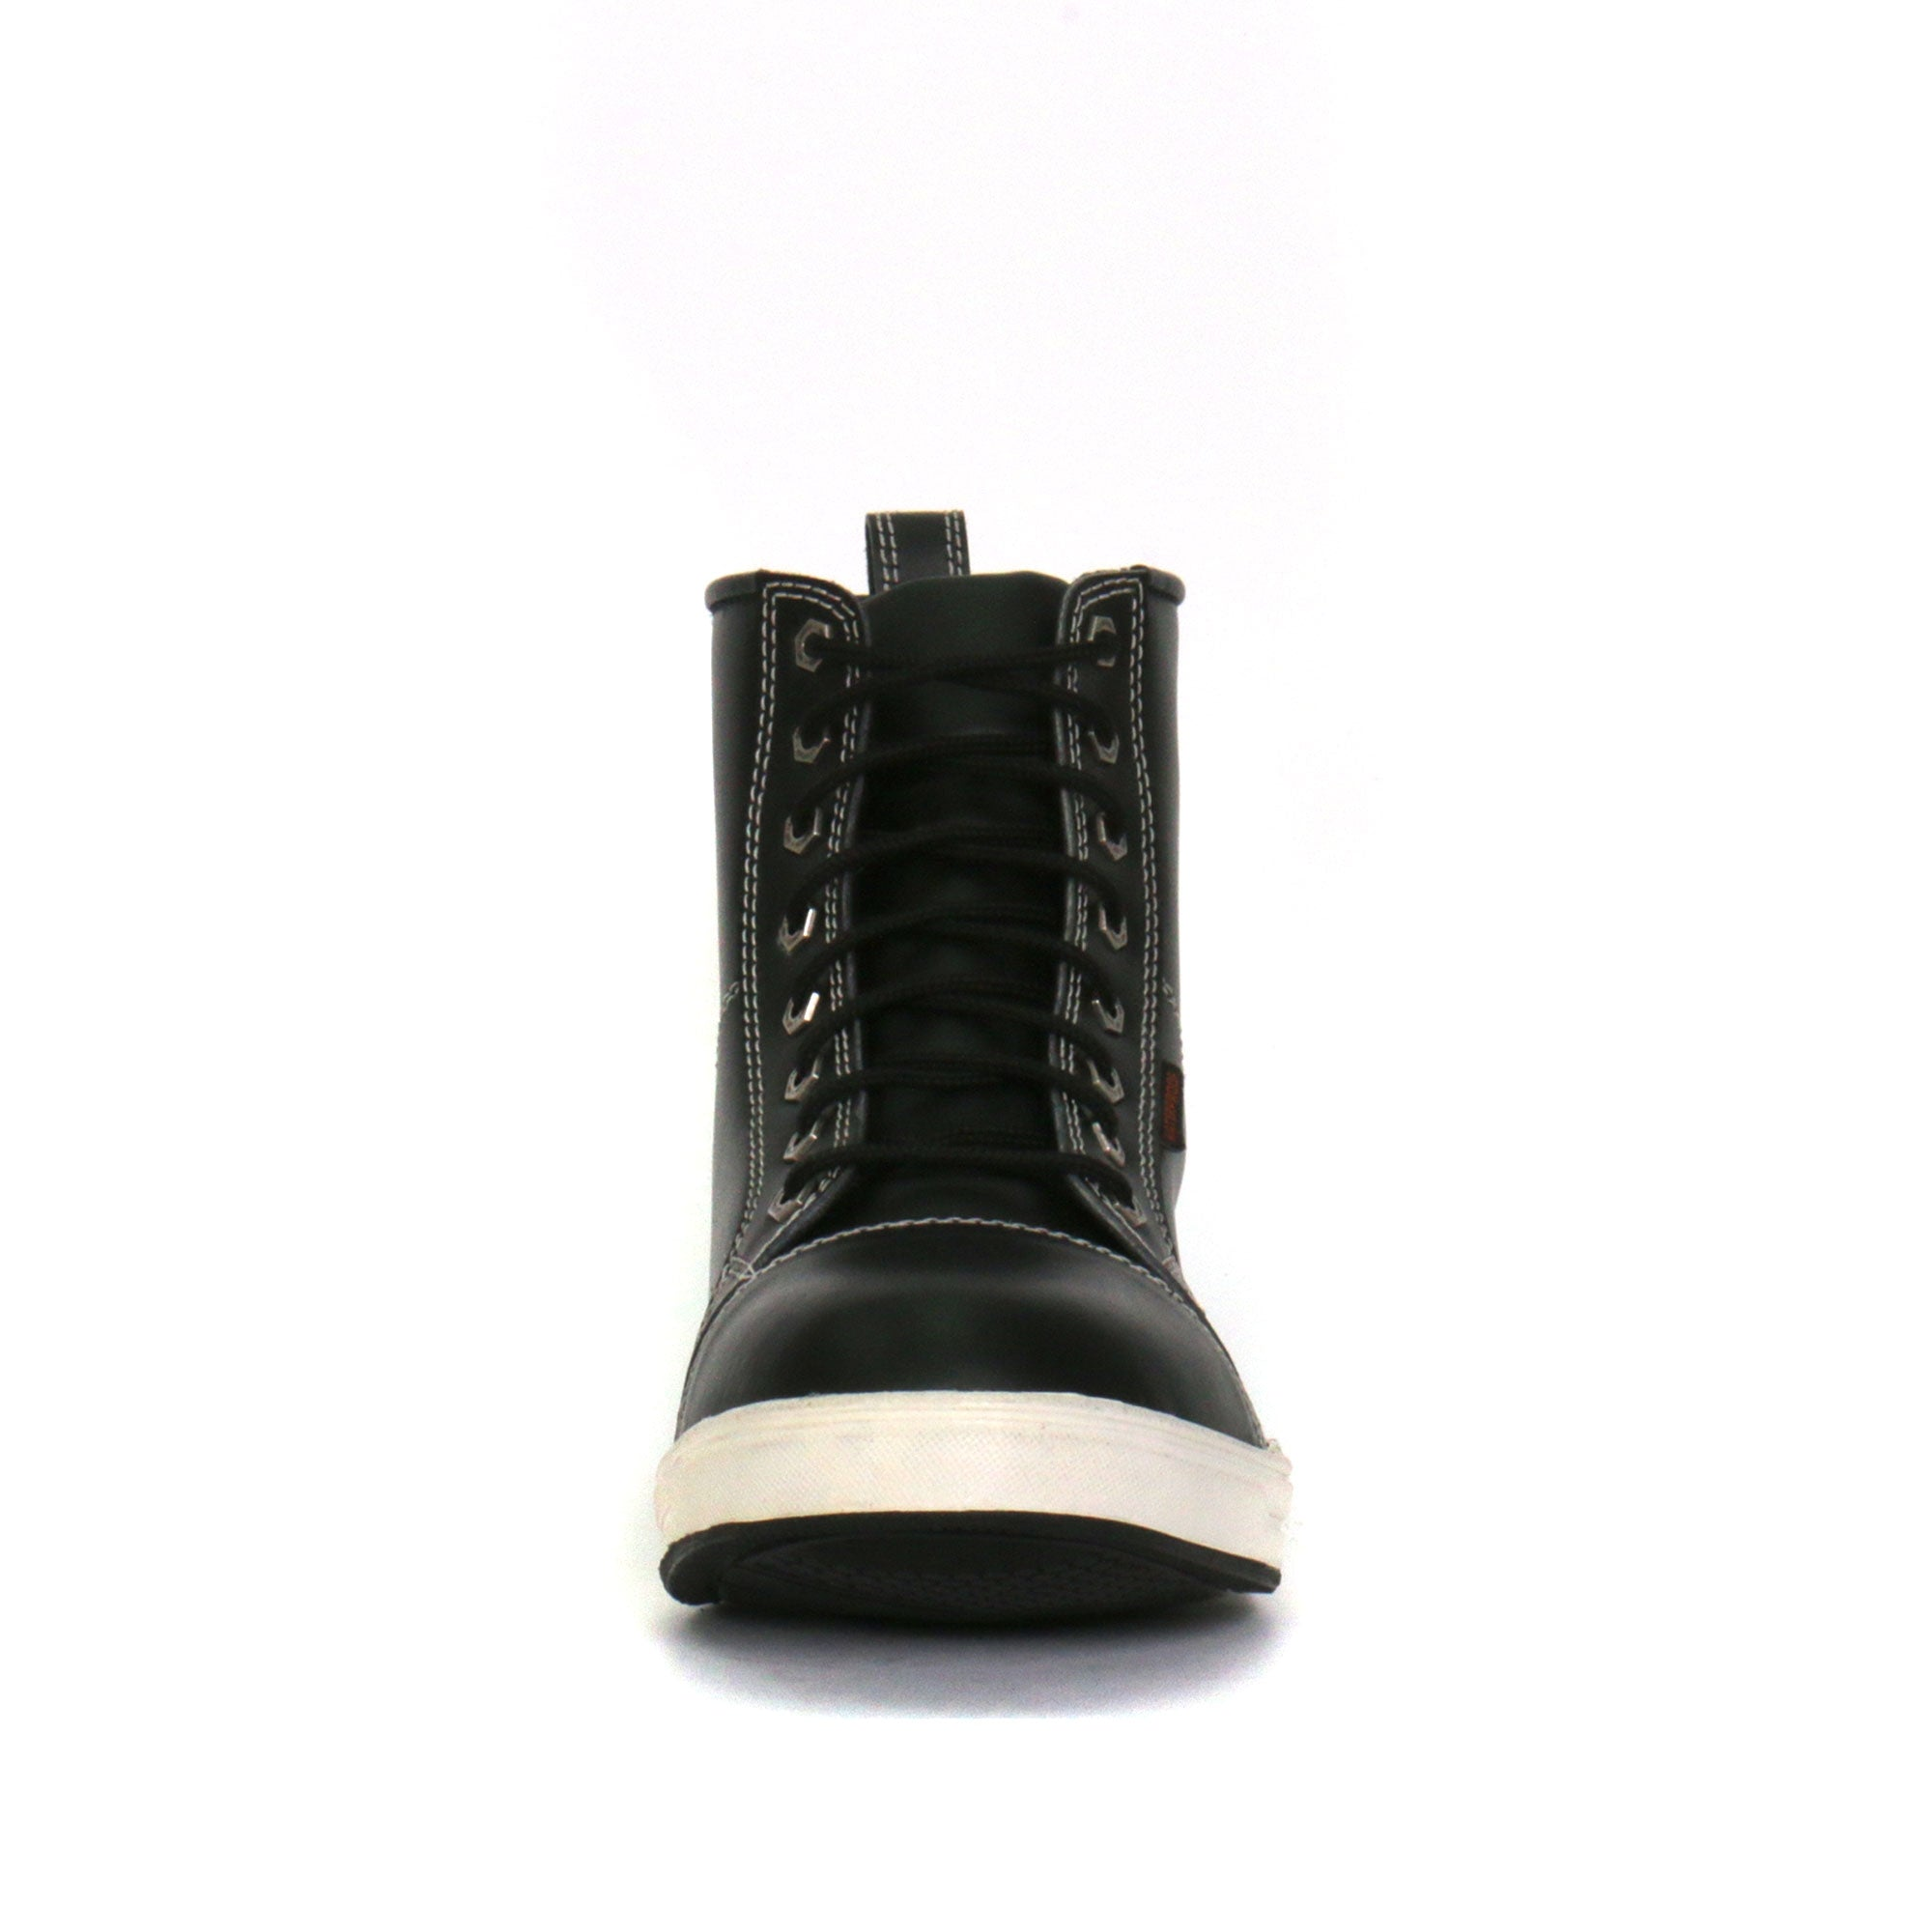 "Hot Leathers Men's 6"" Riding Sneakers"